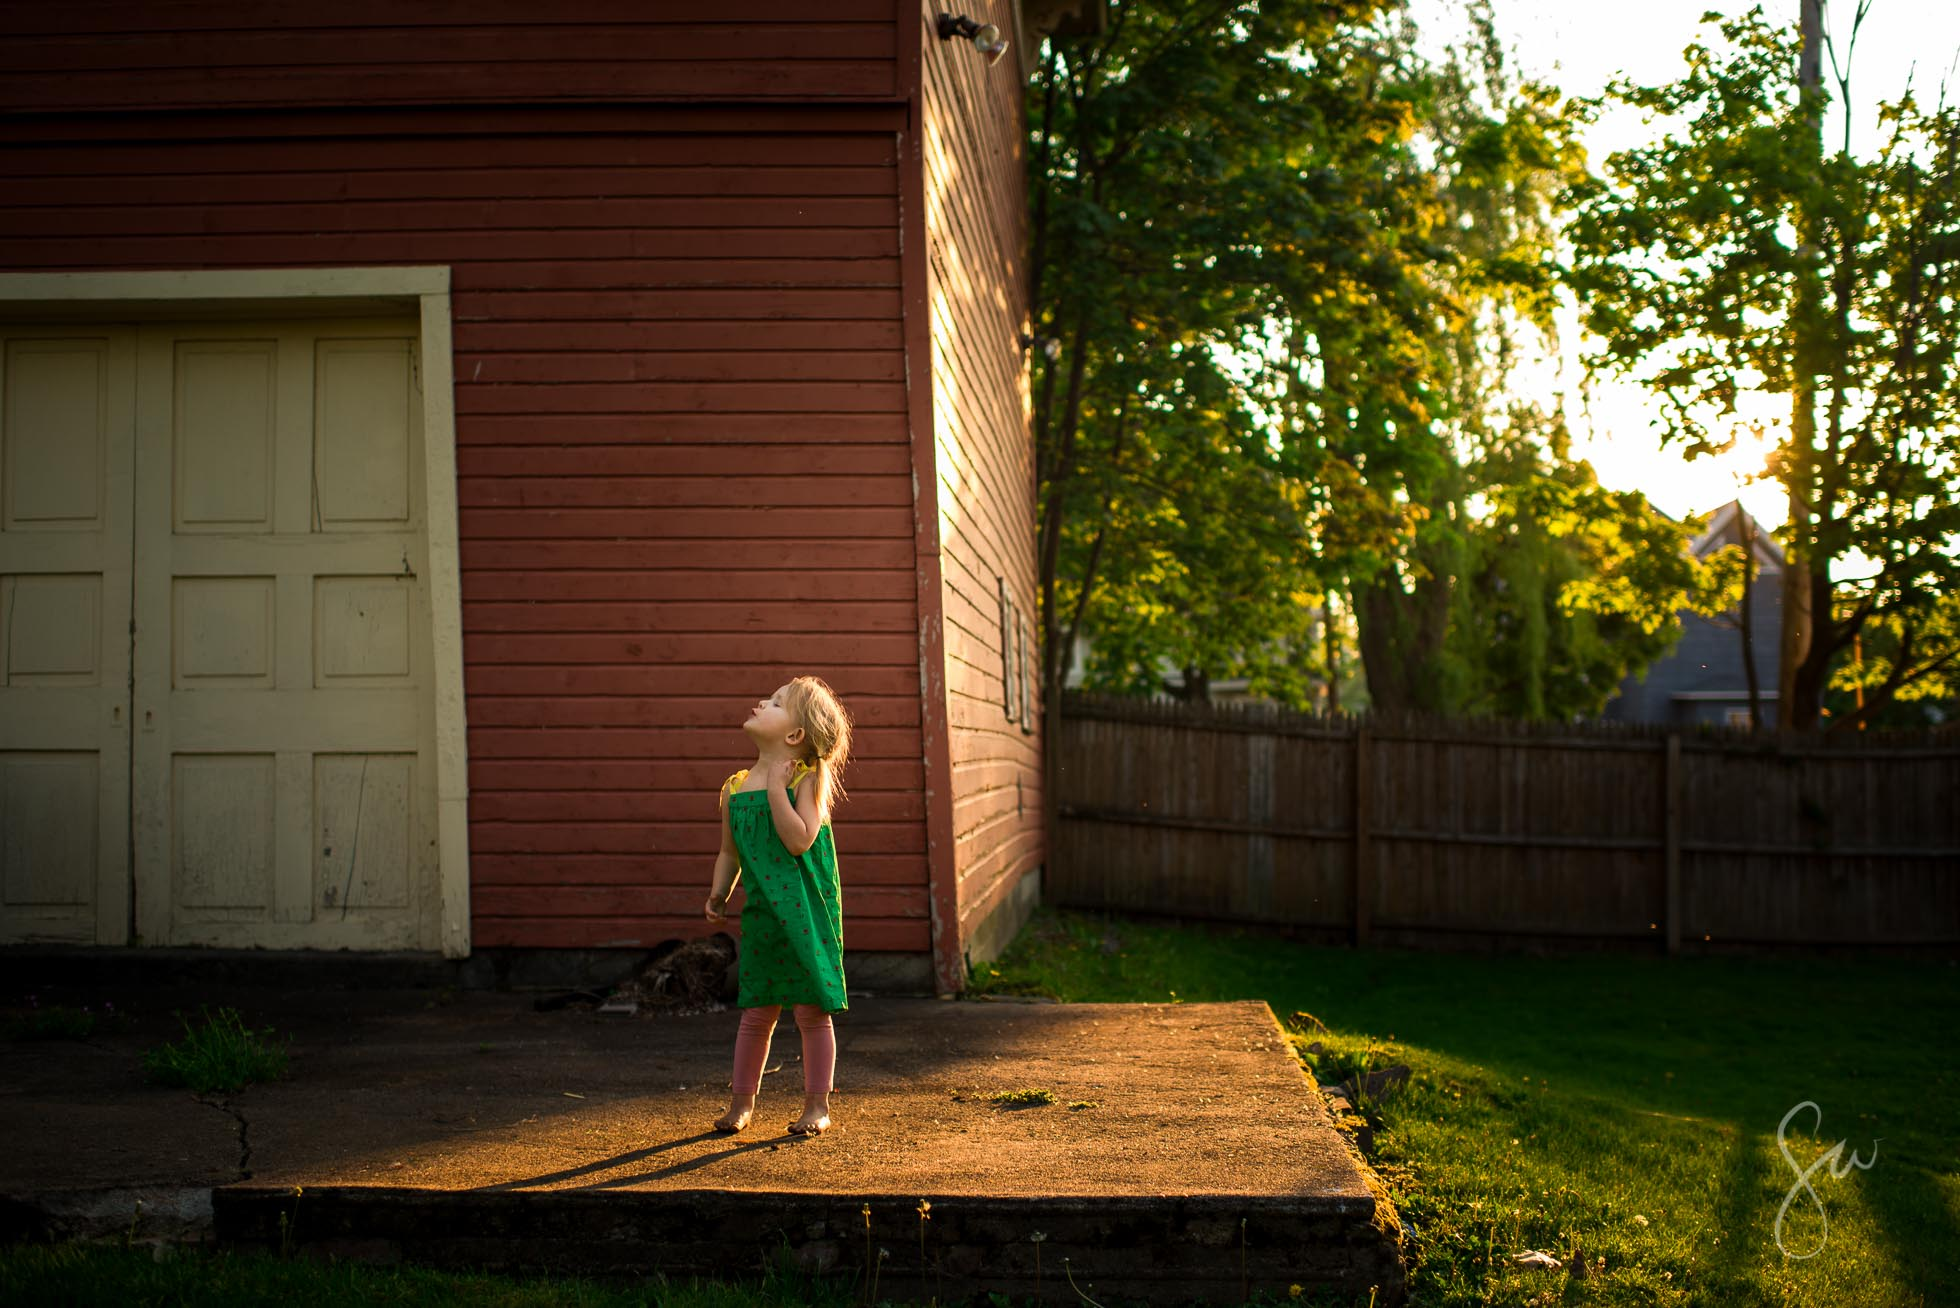 Little-Girl-in-Green-Dress-Standing-in-Evening-Golden-Backlighting-by-Sarah-Wilkerson-2